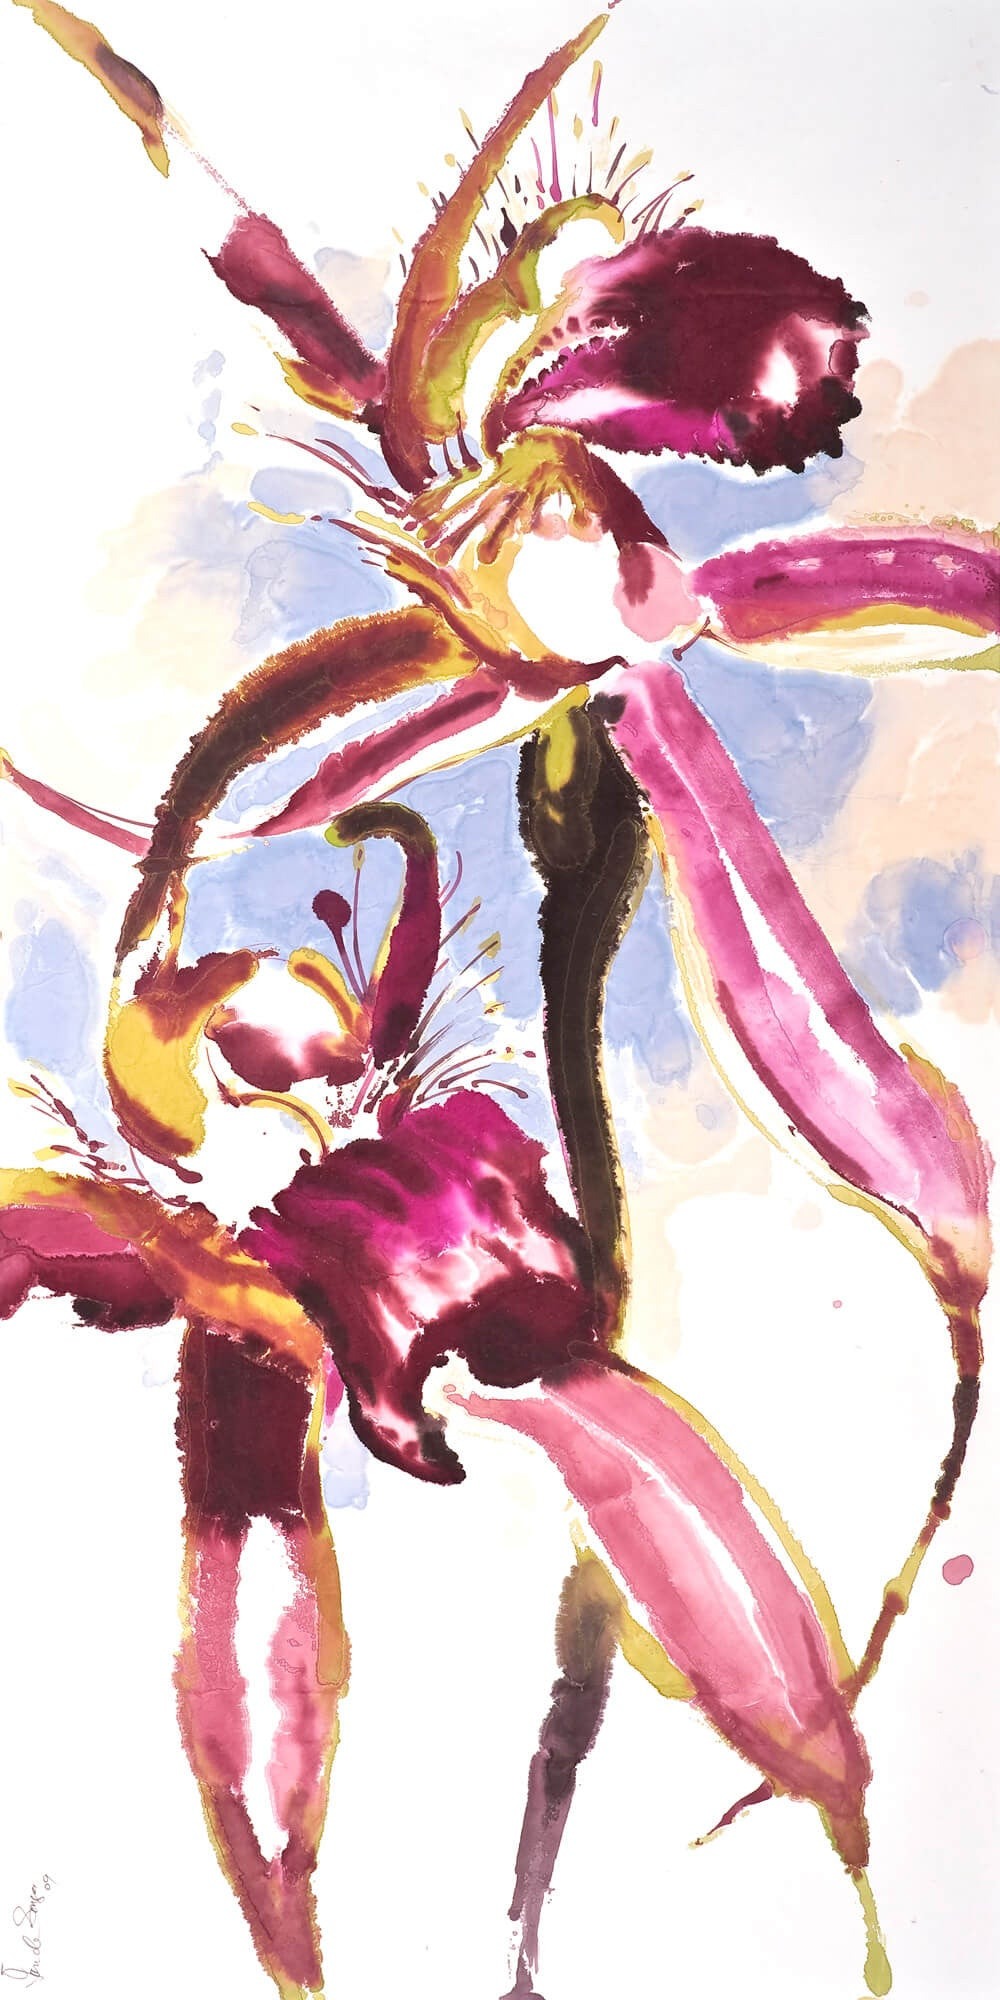 Caladenia brownii: Limited Edition Print